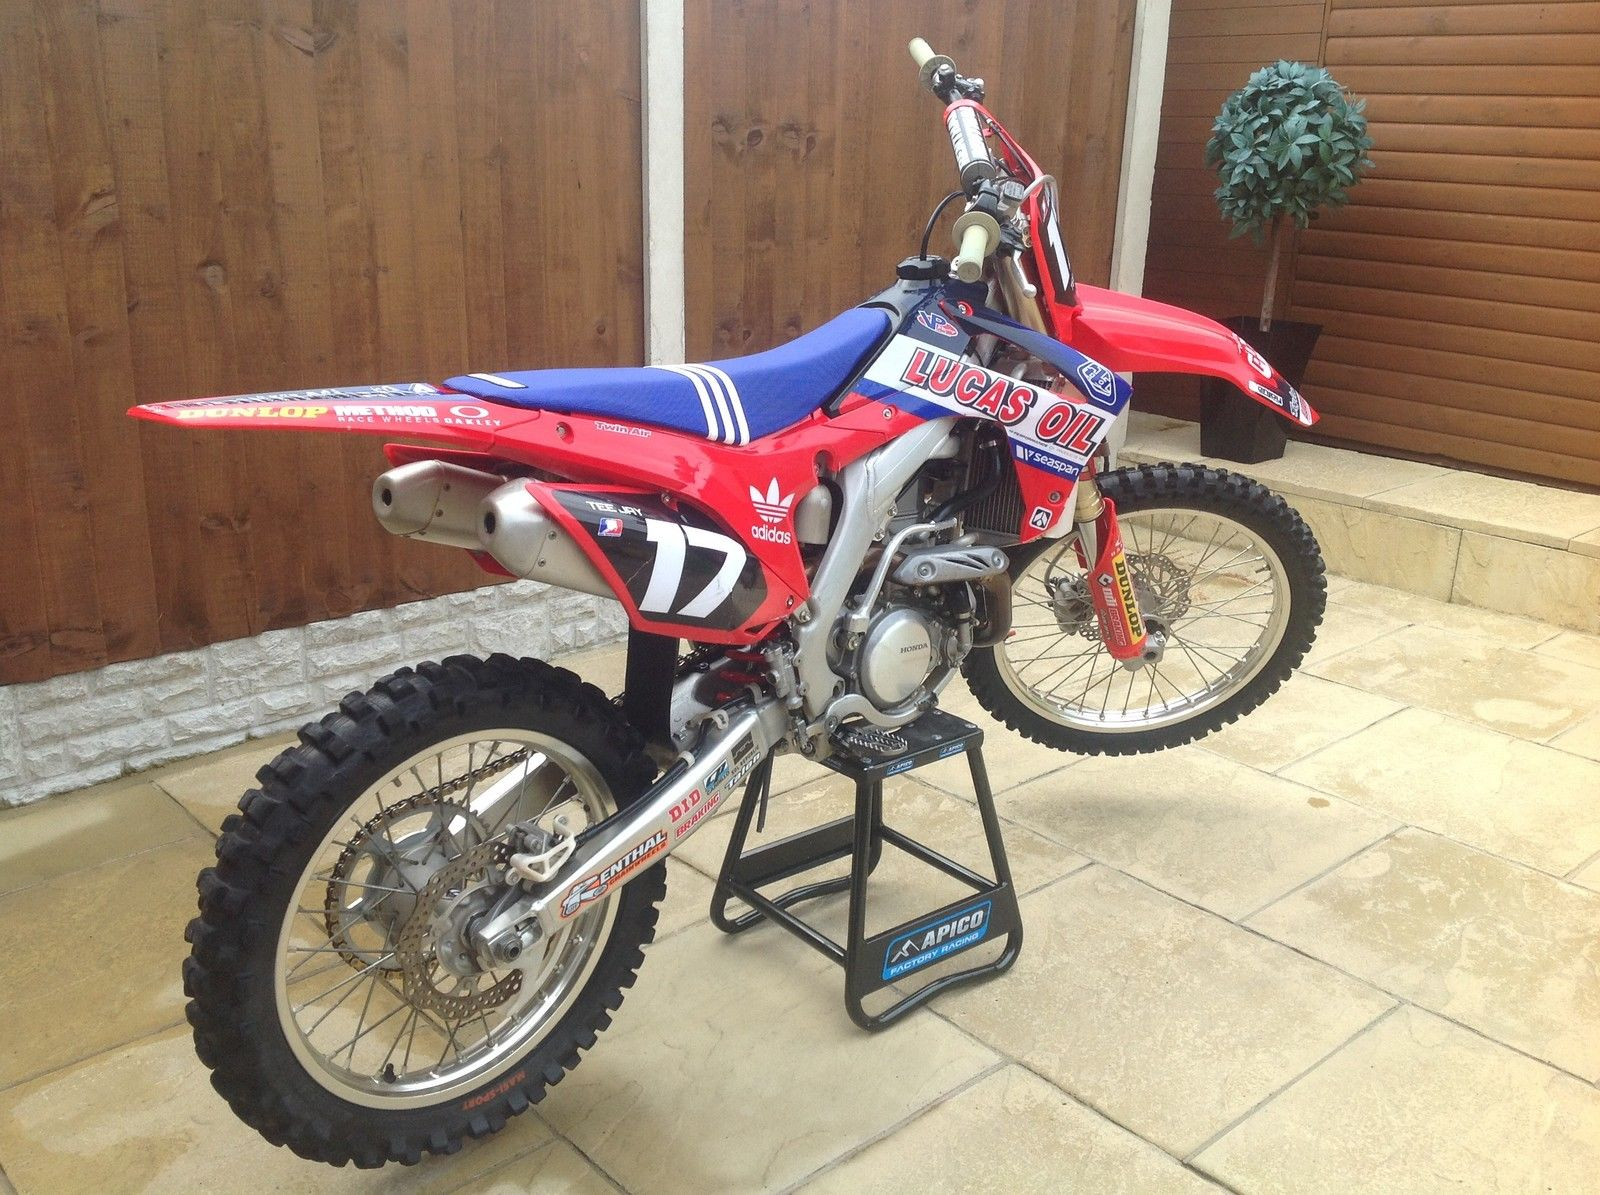 honda crf 450 moto cross bike stunning condition part ex. Black Bedroom Furniture Sets. Home Design Ideas